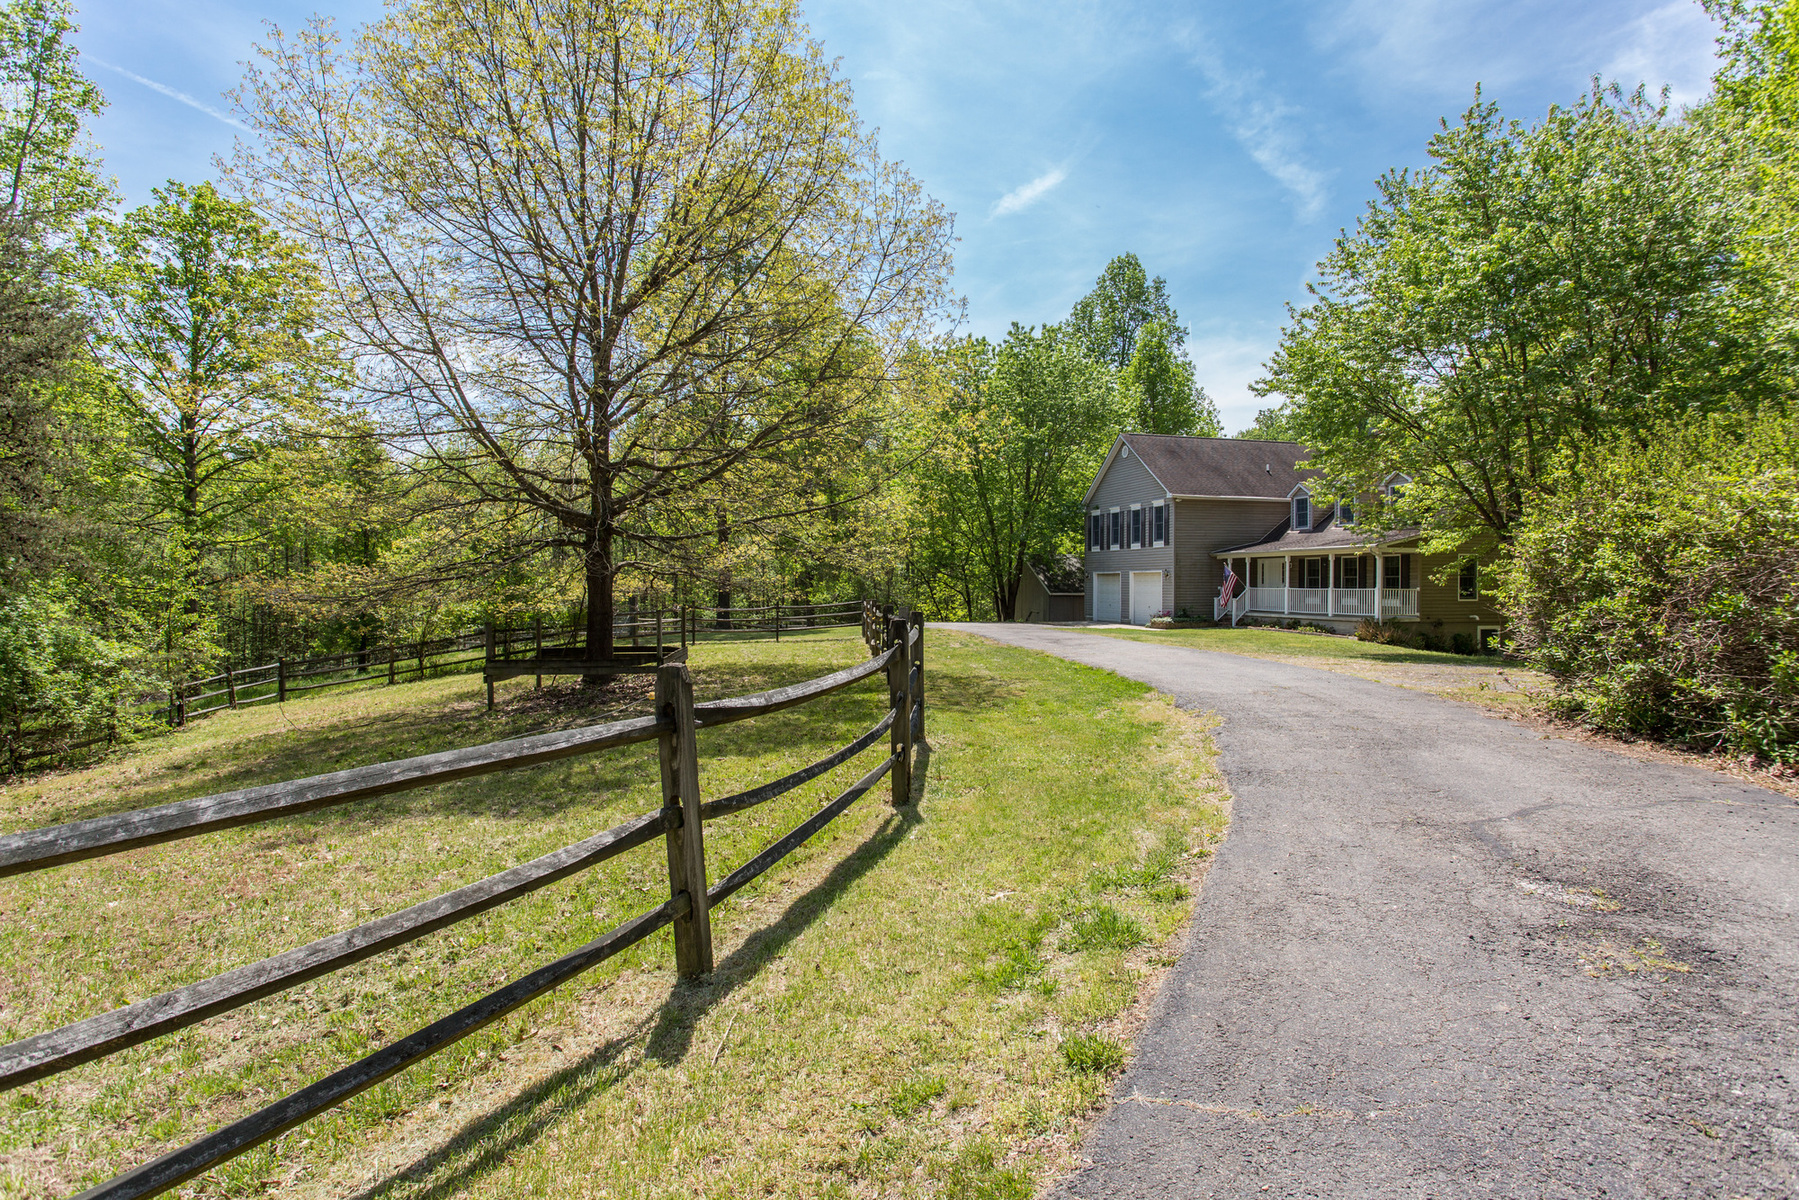 Additional photo for property listing at West End Farms 10607 Brookes Reserve Rd Upper Marlboro, Maryland 20772 Estados Unidos